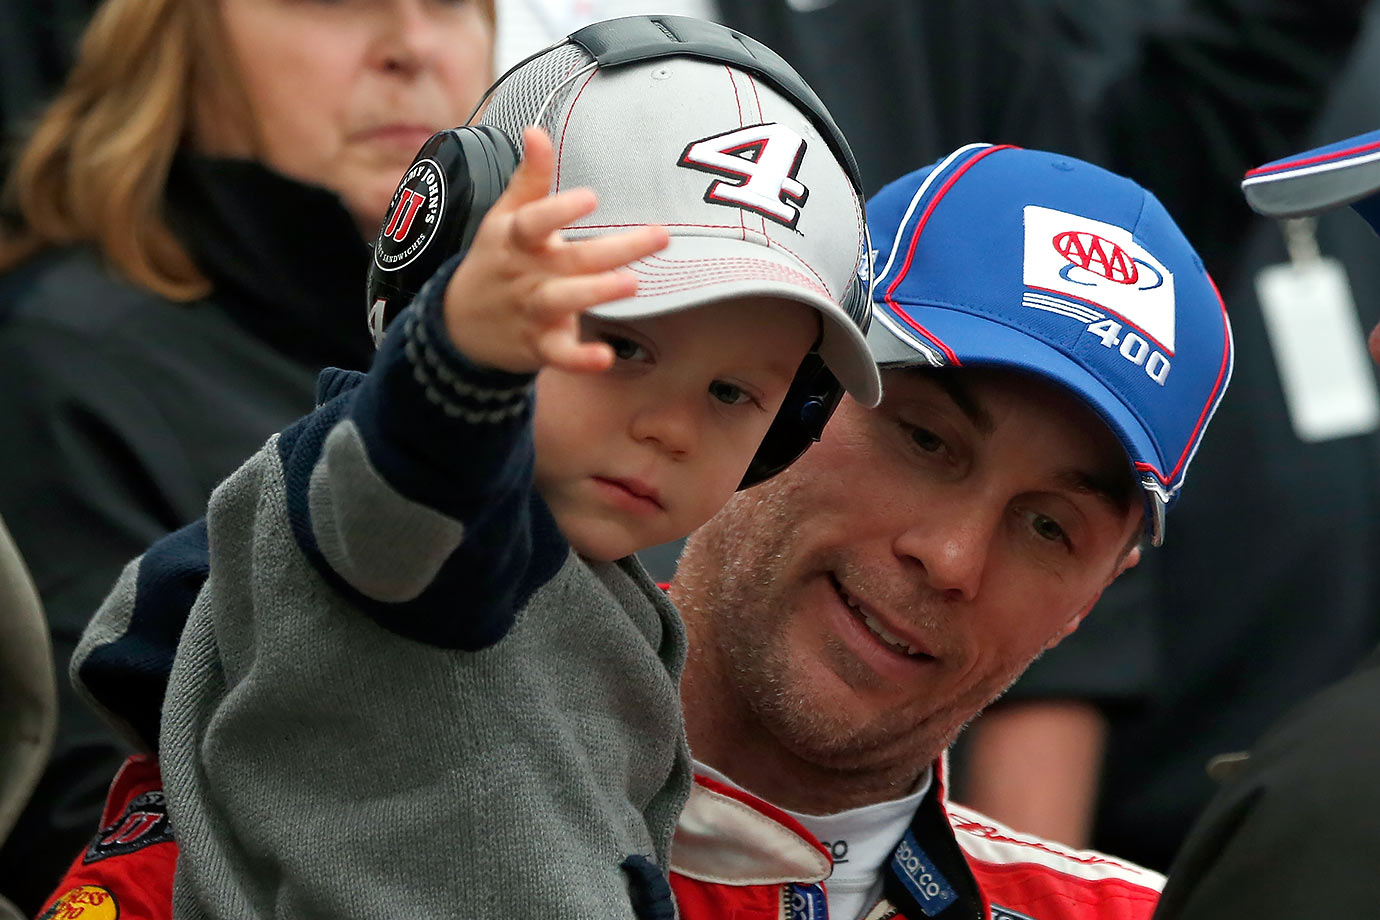 Kevin Harvick holds his son Keelan in Victory Lane after winning the AAA 400 race at Dover International Speedway on October 4, 2015.